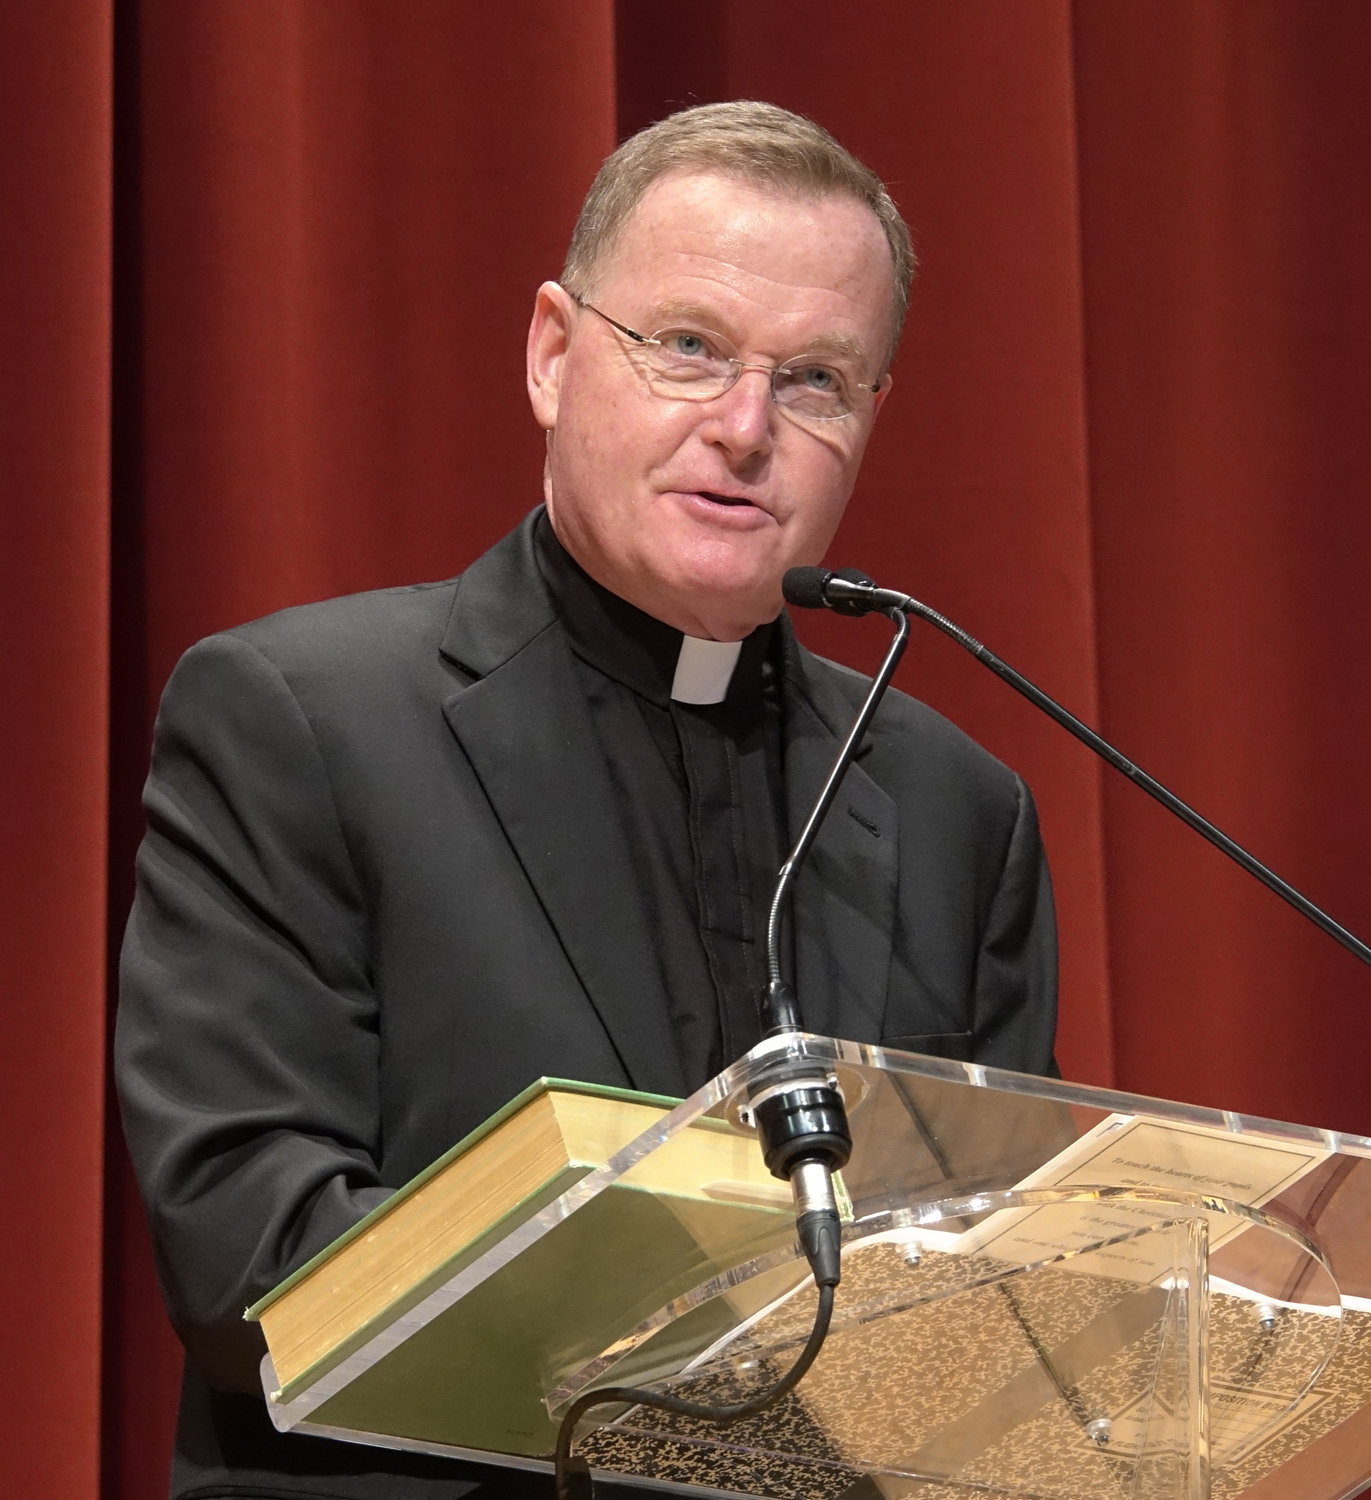 Bishop-elect Edmund Whalen, vicar for clergy and former principal of Msgr. Farrell High School on Staten Island, delivers the keynote address at the gathering.